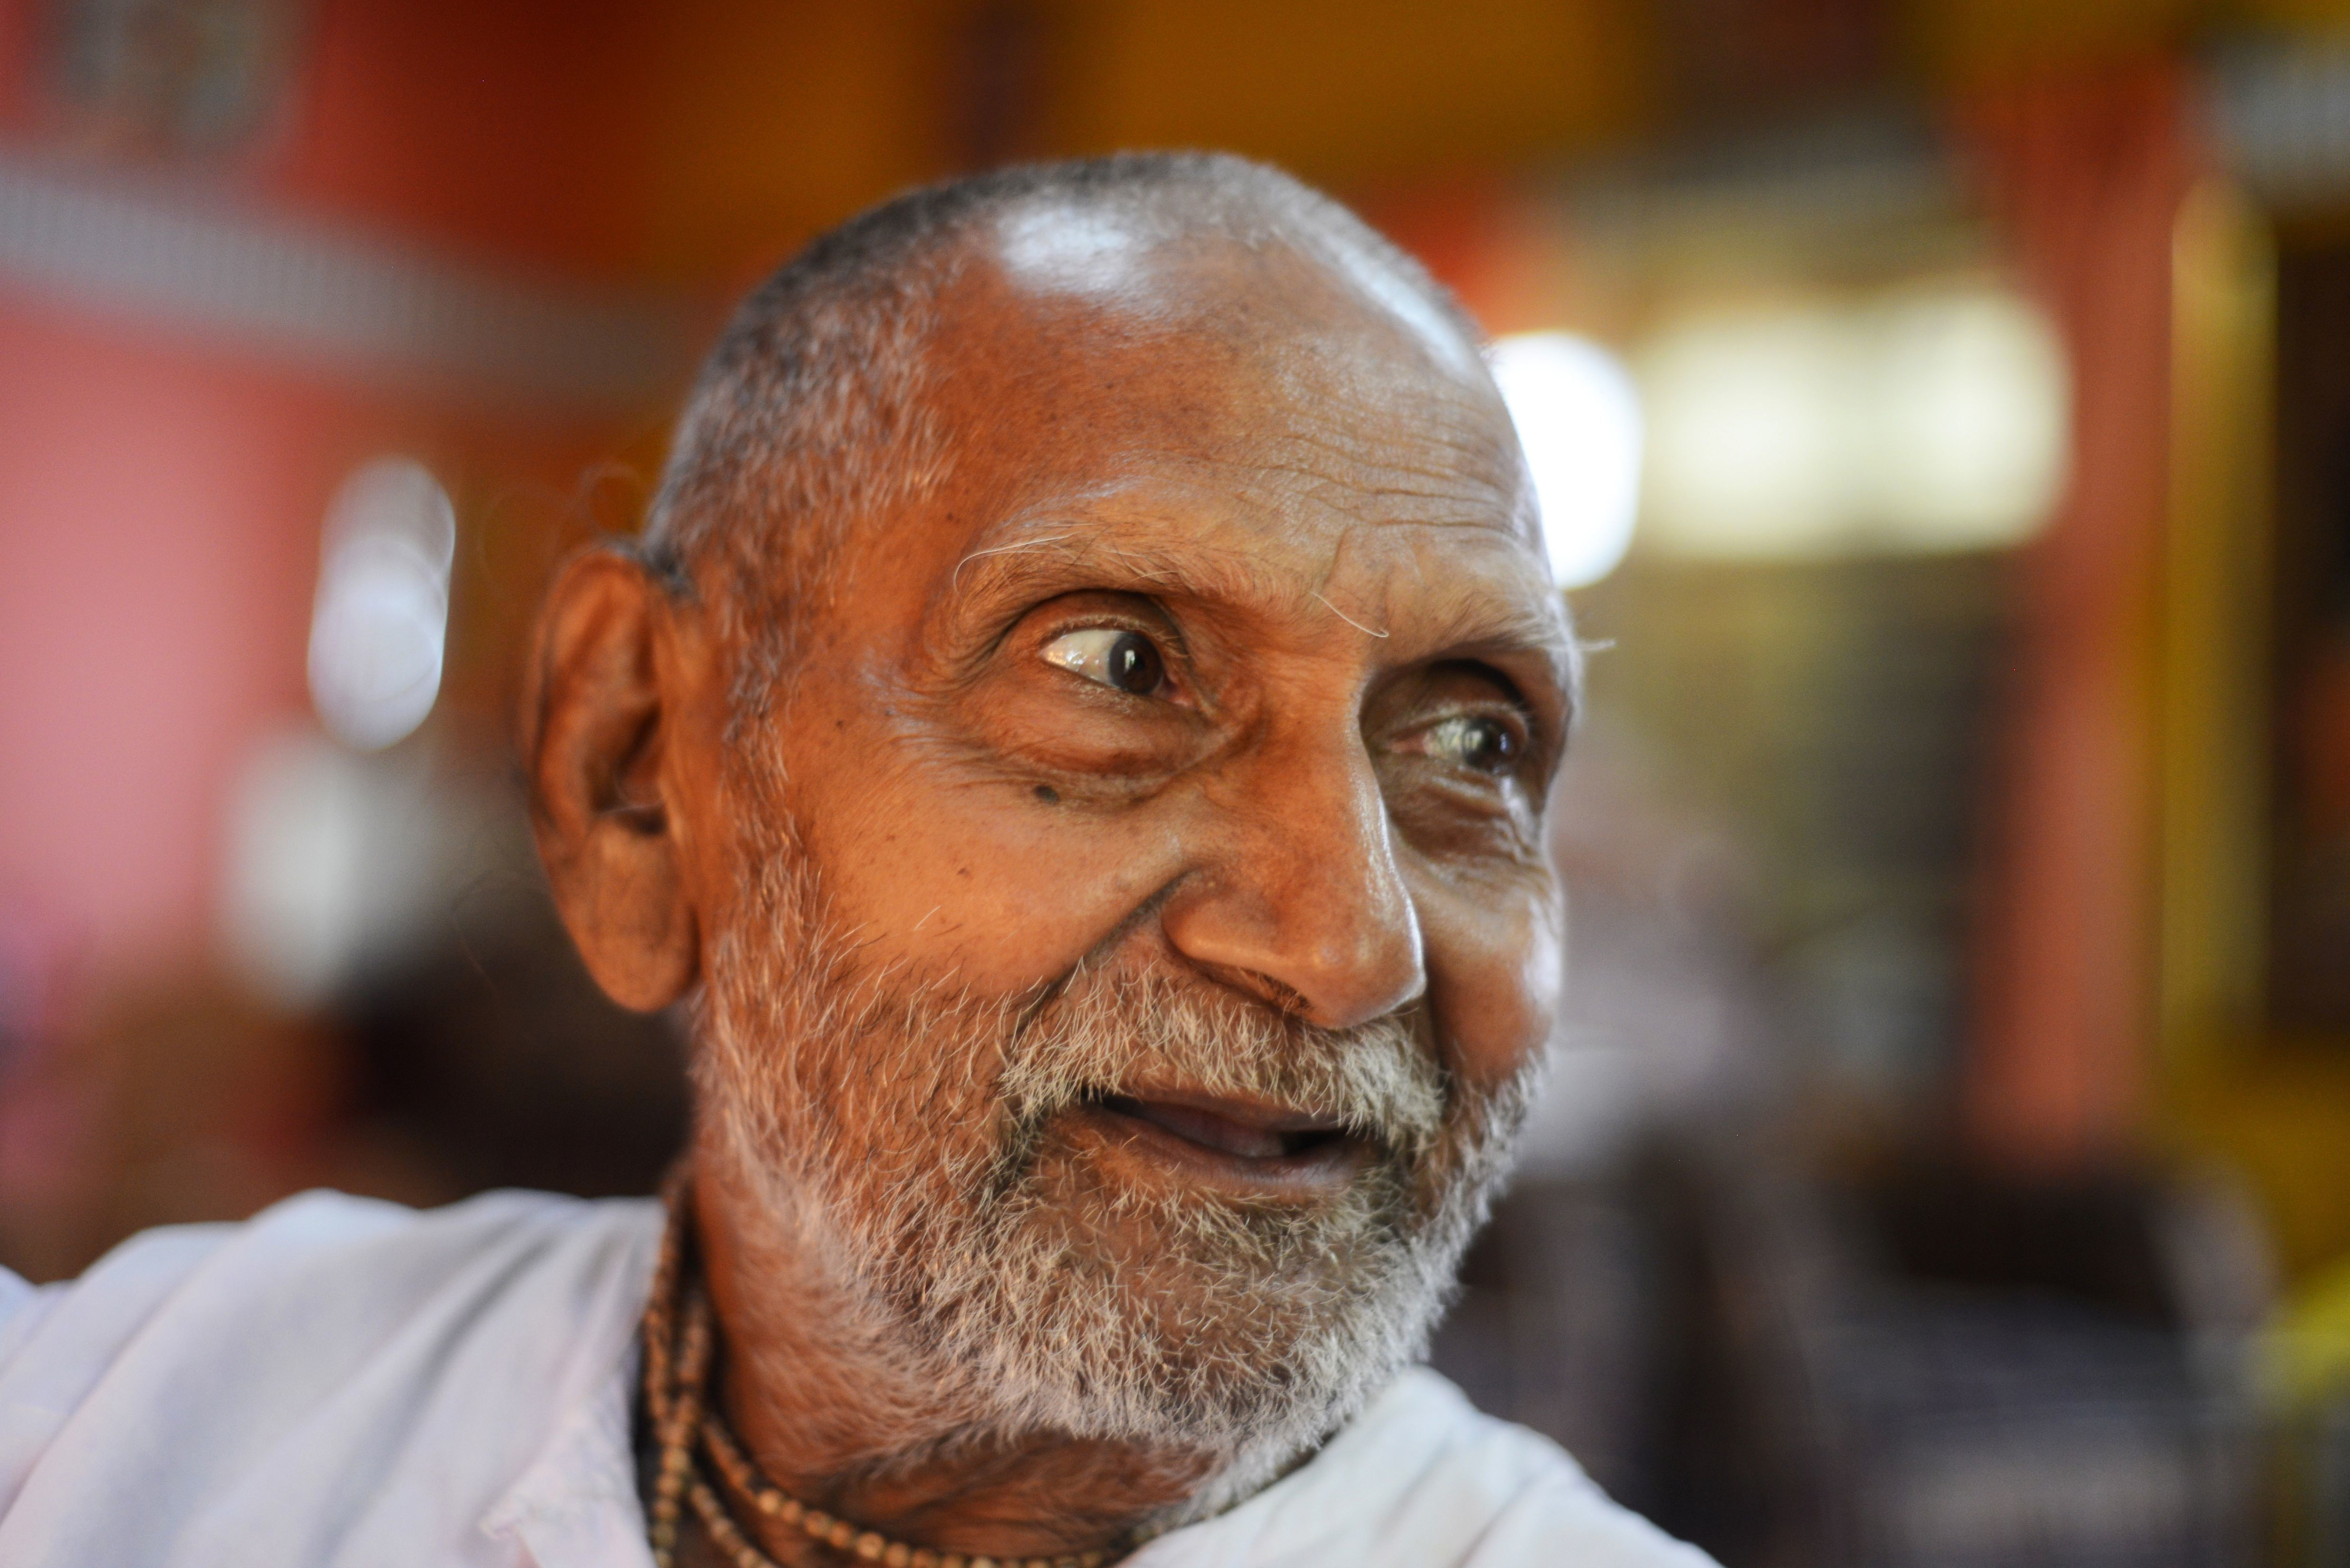 Monk, 120, Credits Longevity To No Spices -- and No